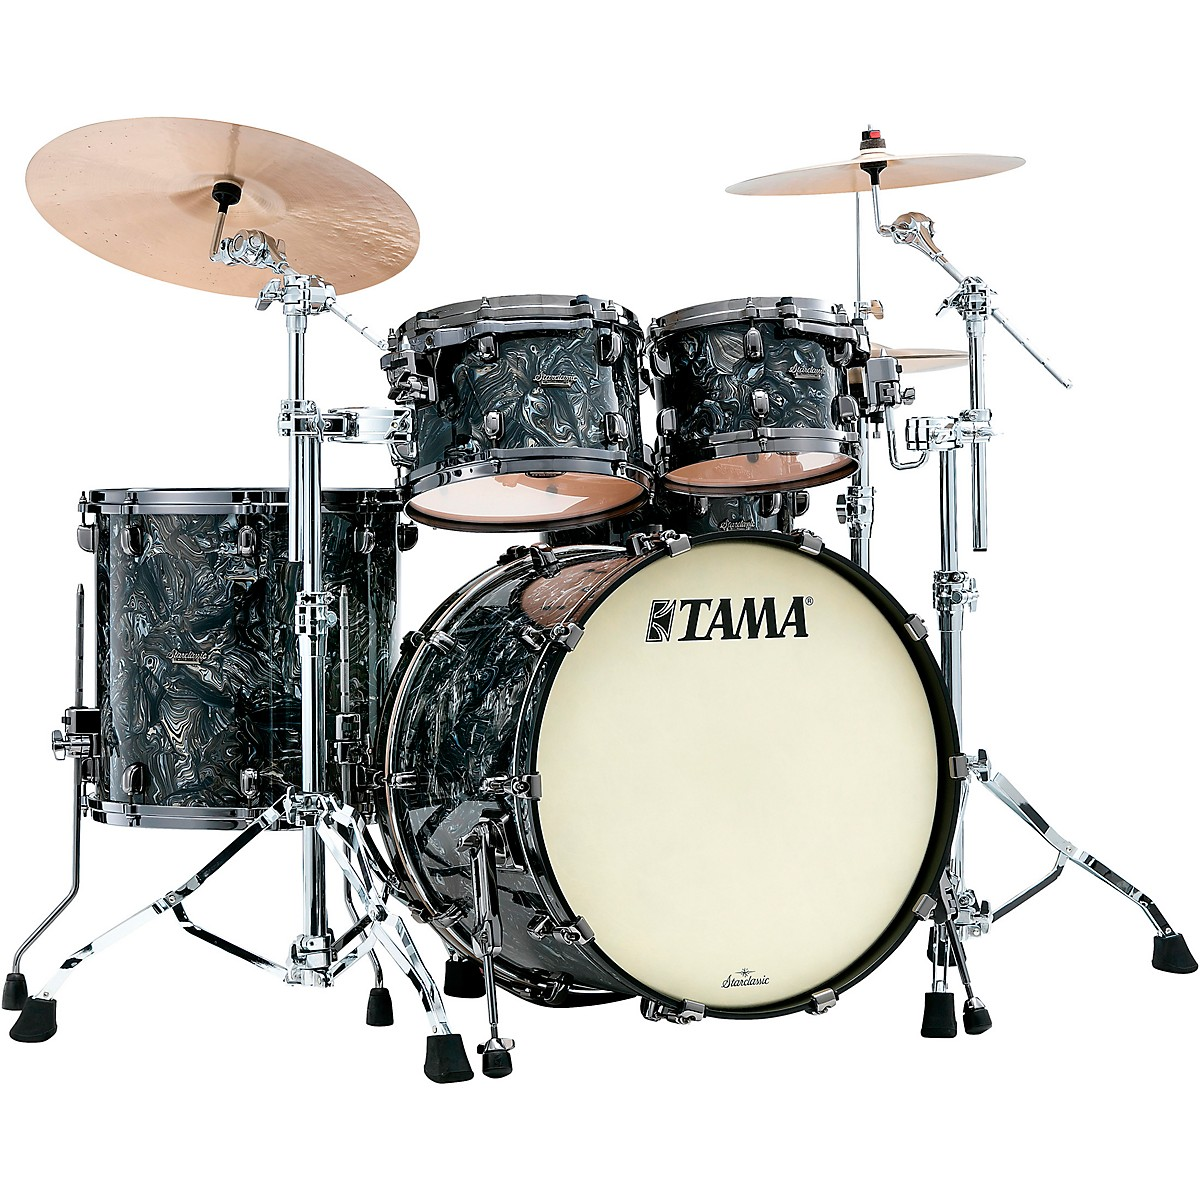 TAMA Starclassic Maple 4-Piece Shell Pack with Black Nickel Hardware and 22 in. Bass Drum